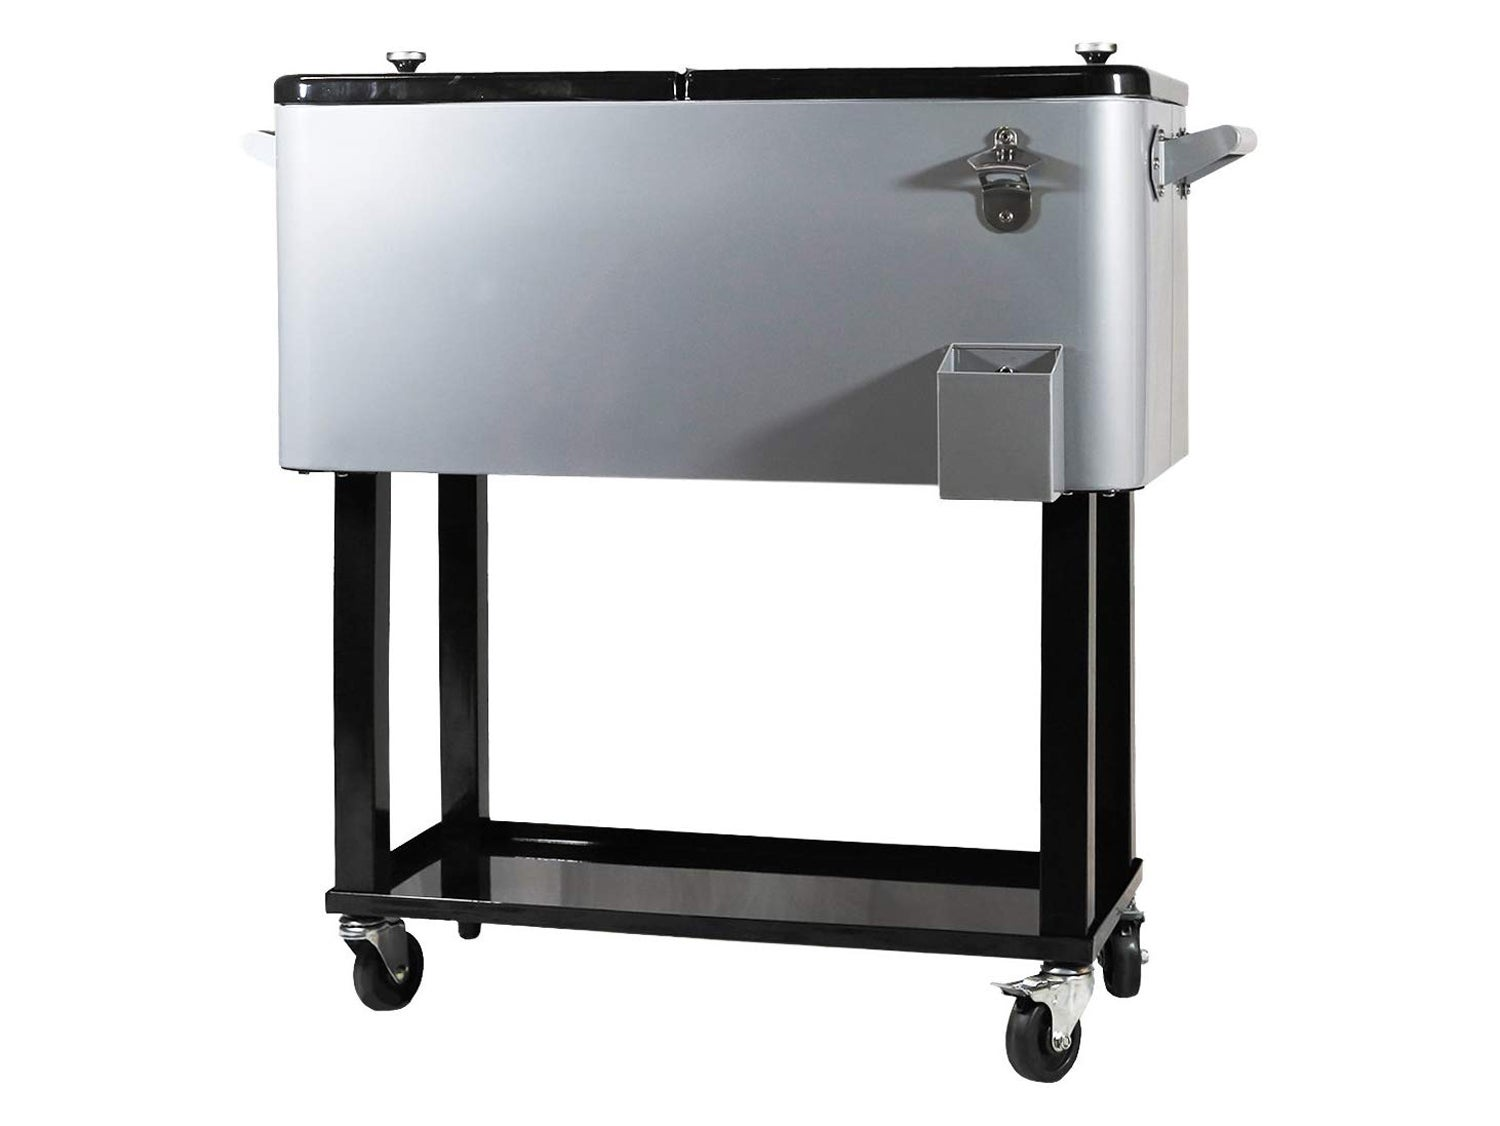 3 Features to Consider in Your Next Rolling Patio Cooler